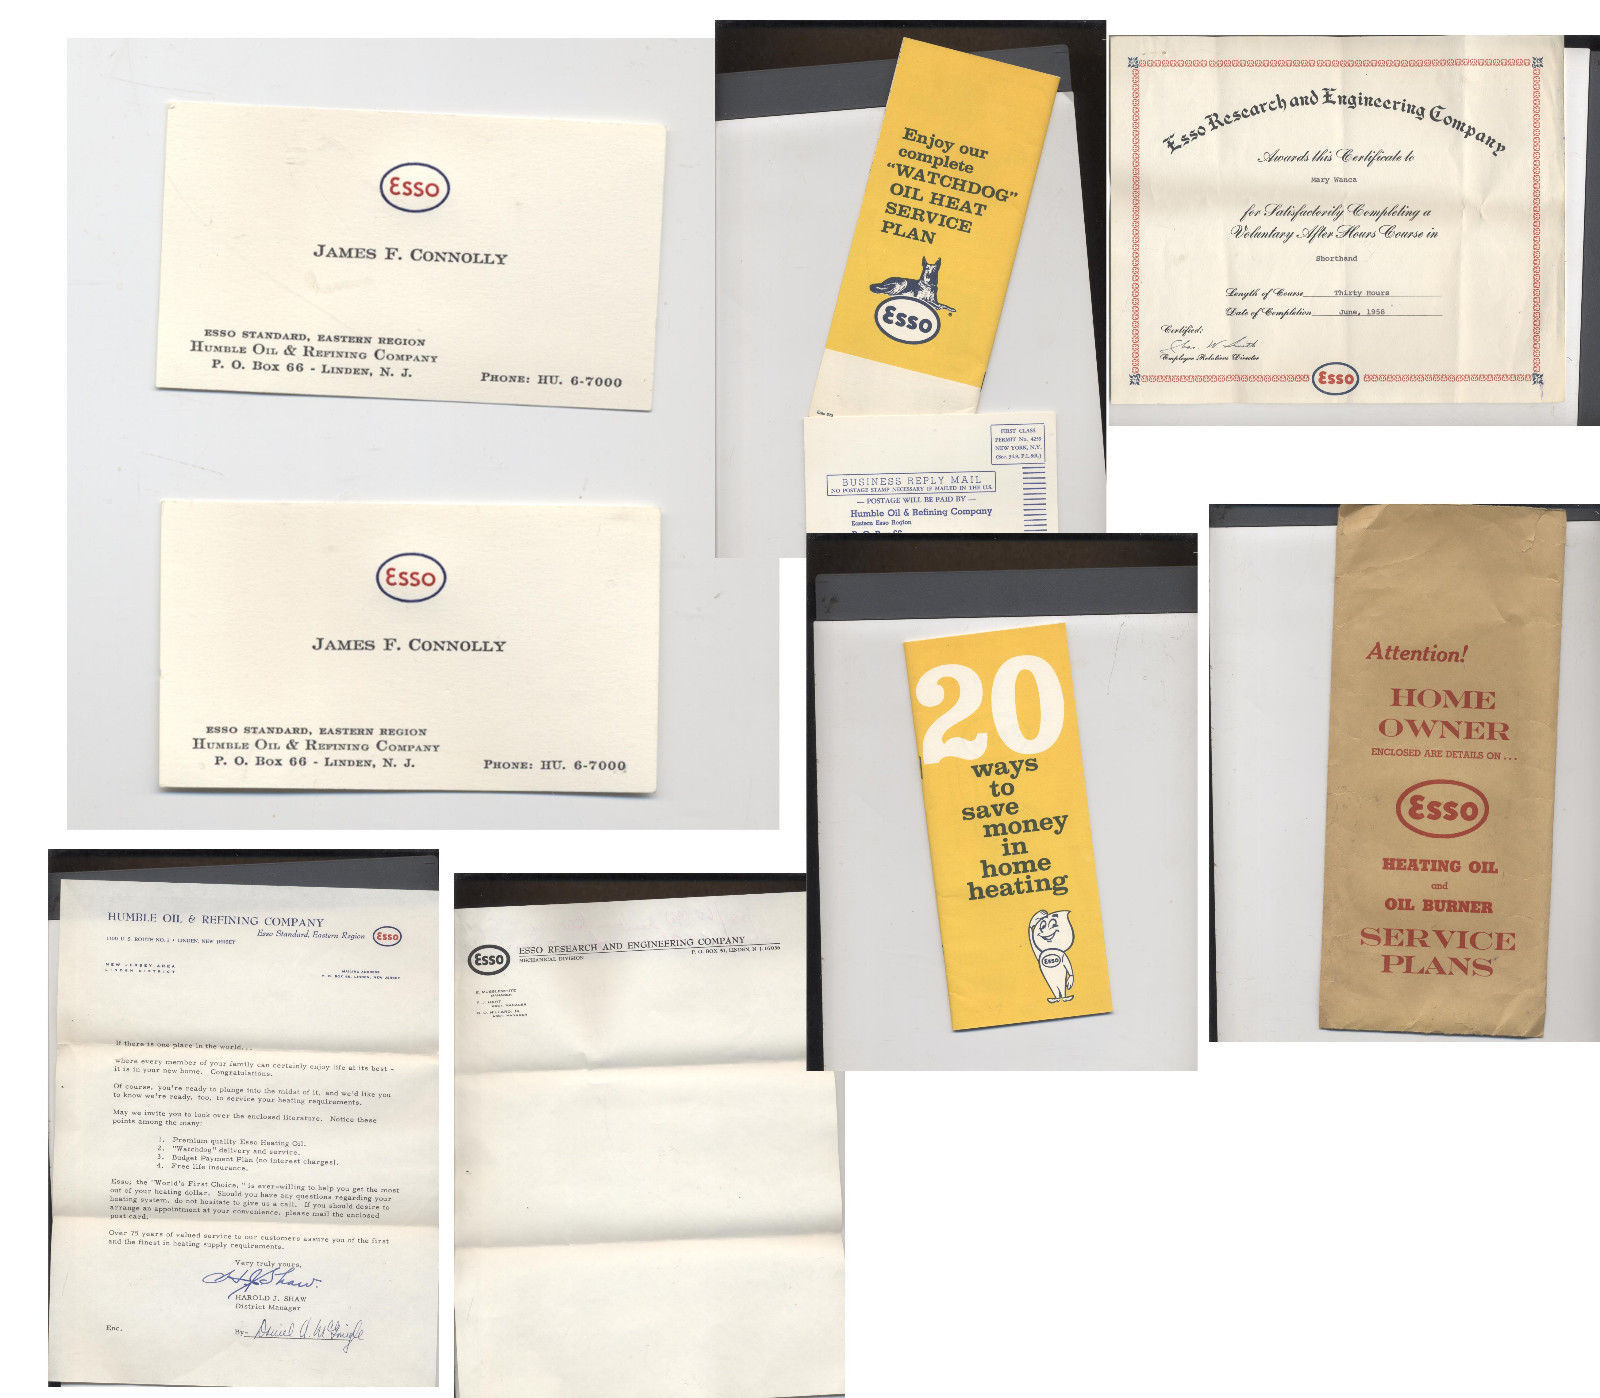 Esso business card 1 listing lot of vintage esso paperwork linden nj business cards certificate more 3499 reheart Choice Image